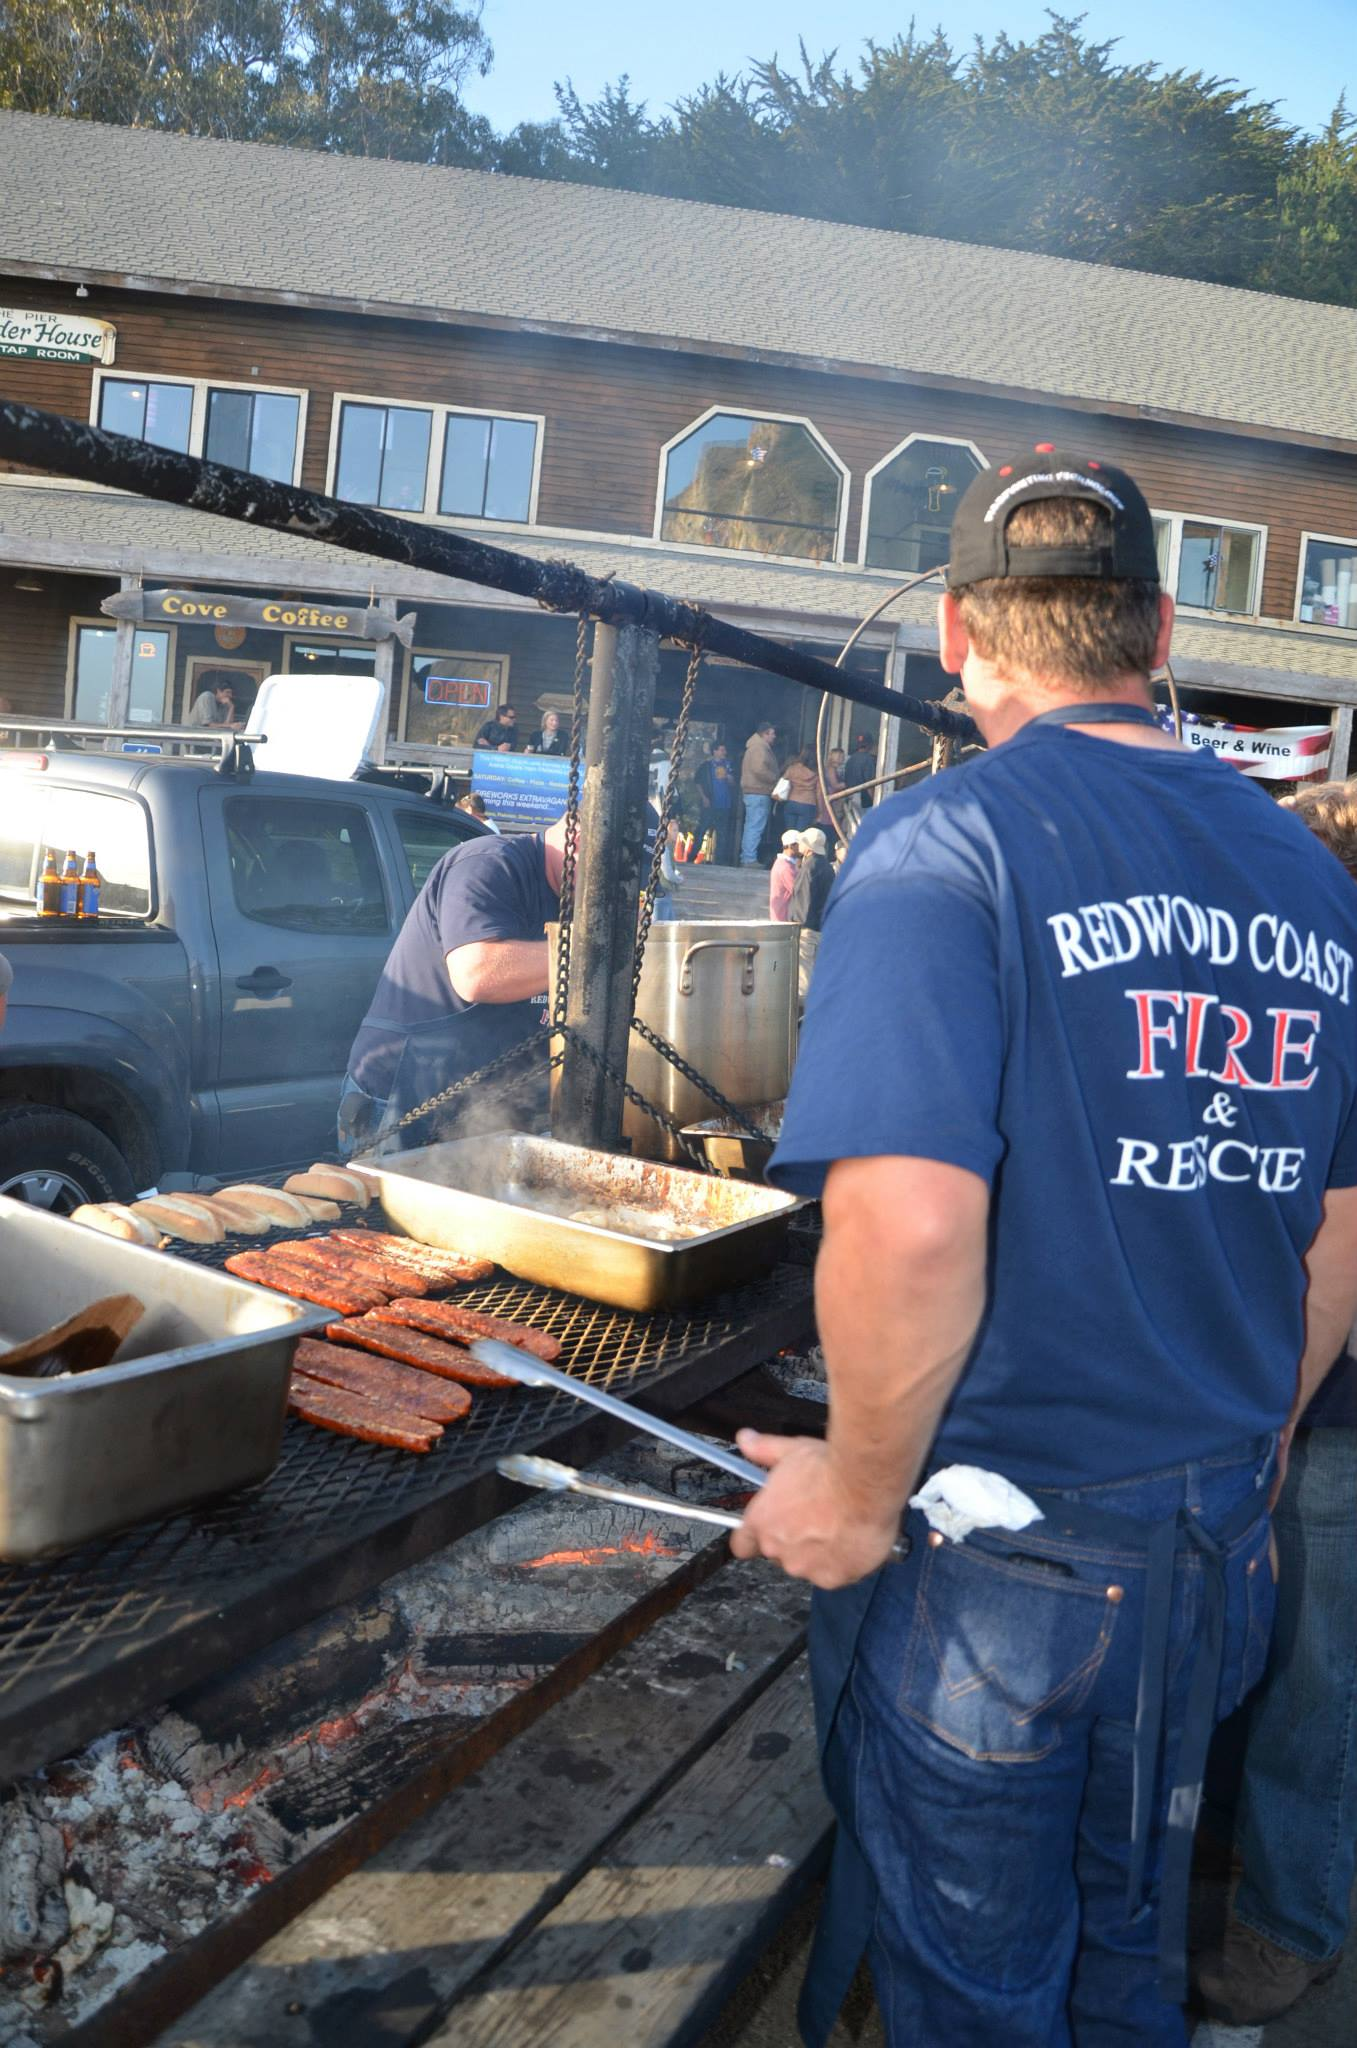 firemen at the fire, independence day 2015 events,